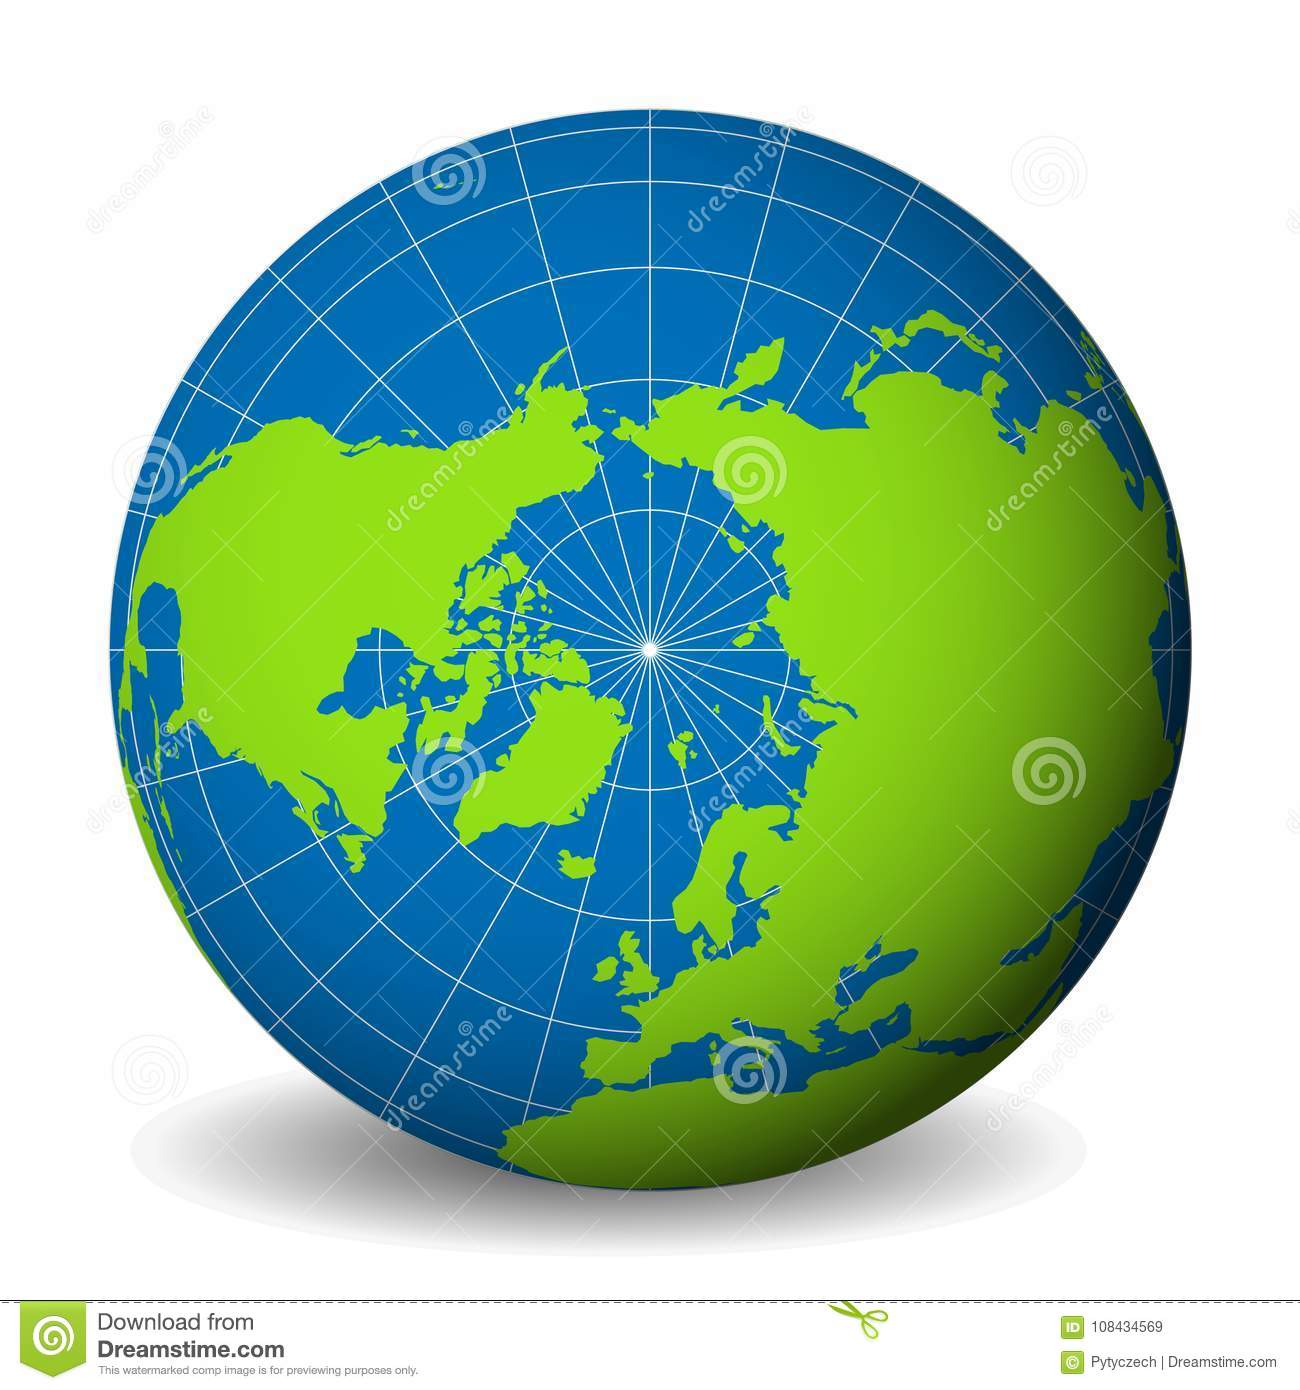 Earth globe with green world map and blue seas and oceans focused on earth globe with green world map and blue seas and oceans focused on arctic ocean and north pole with thin white meridians and parallels gumiabroncs Image collections